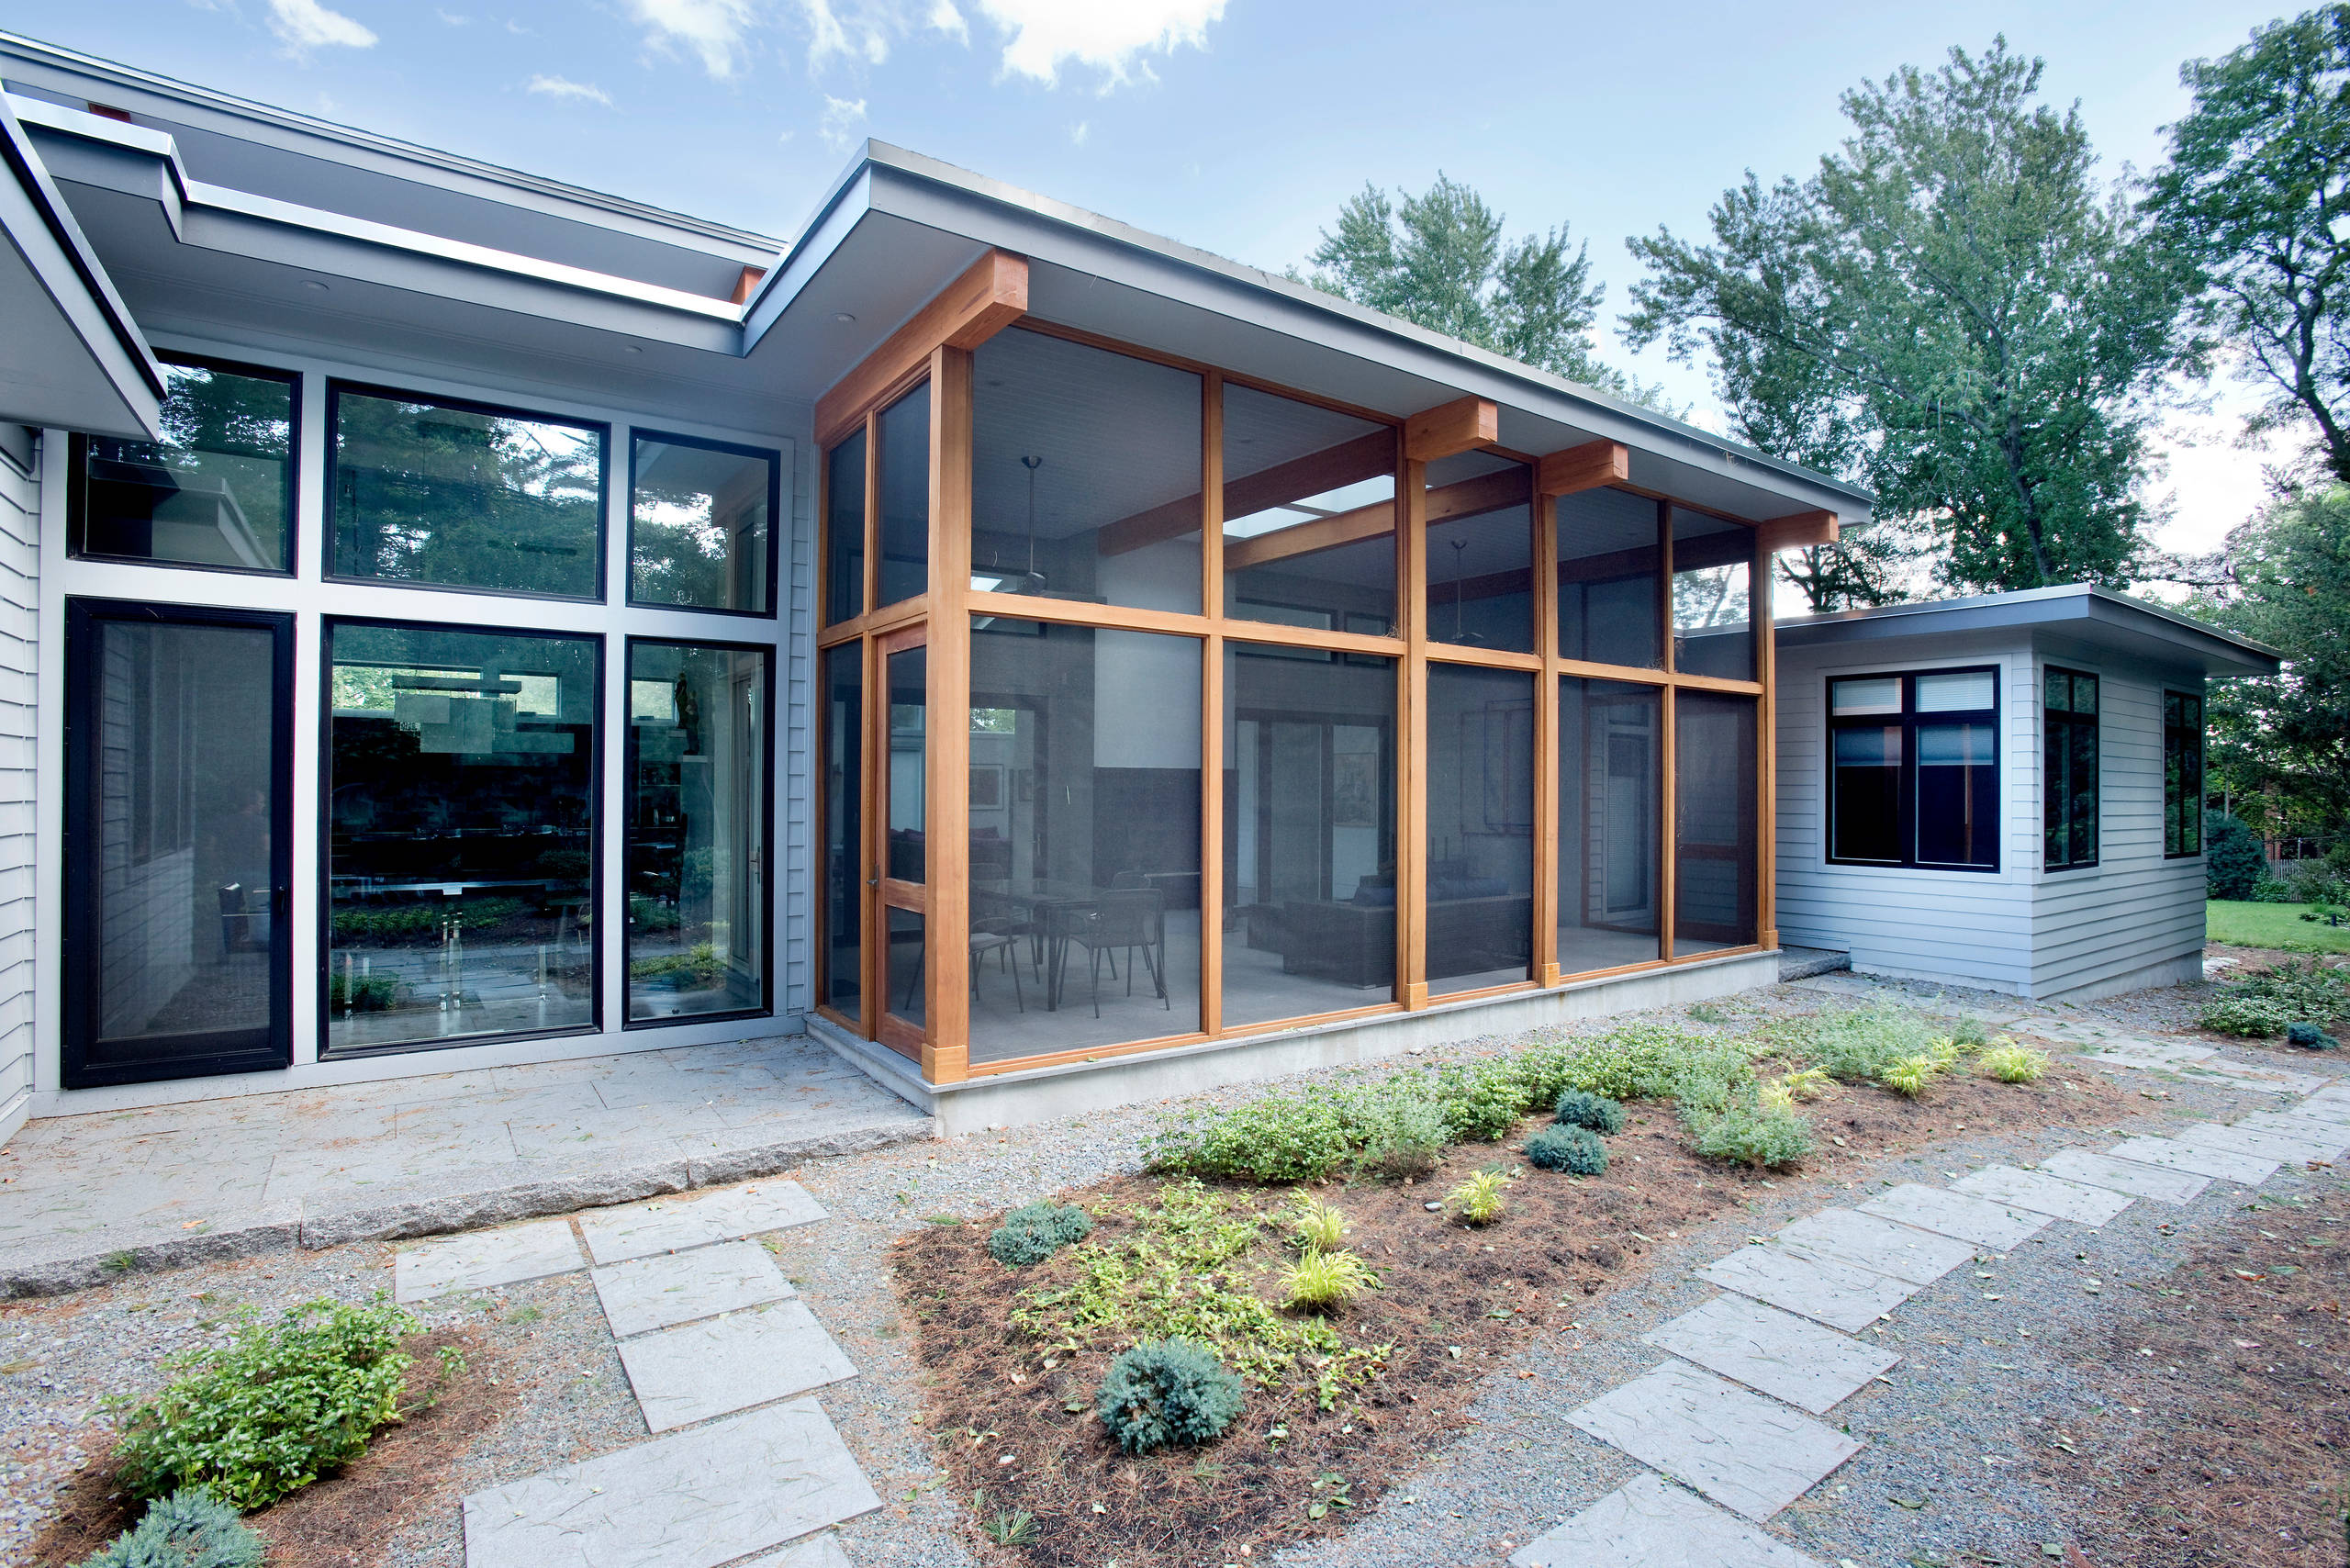 75 Beautiful Modern Screened In Porch Pictures Ideas August 2021 Houzz